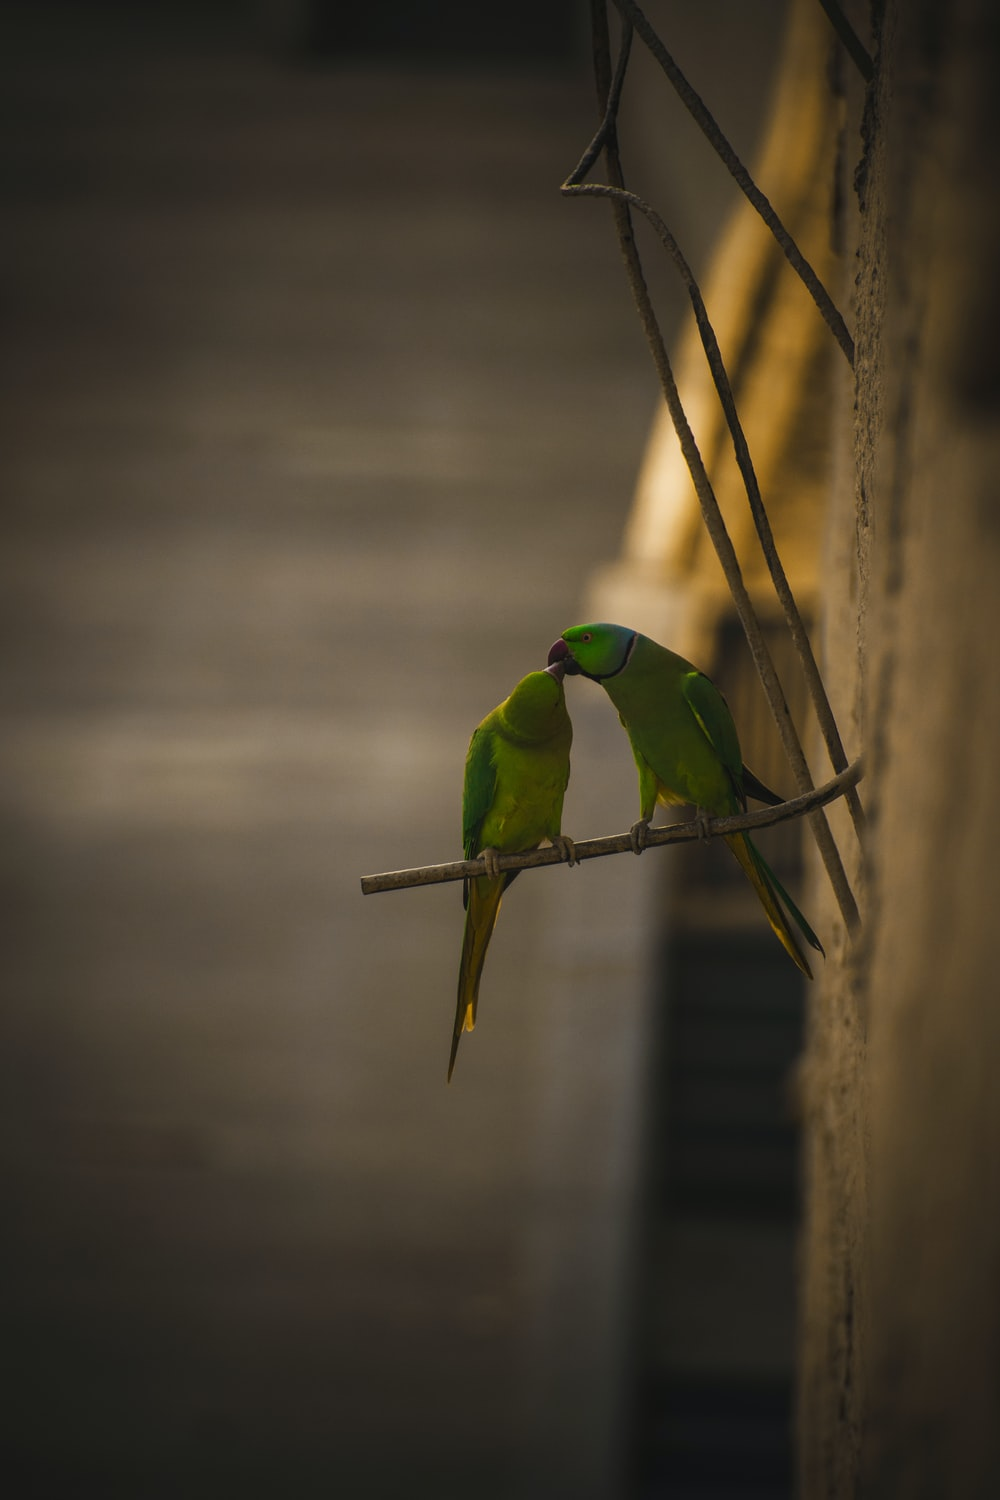 750 Love Bird Pictures Download Free Images On Unsplash